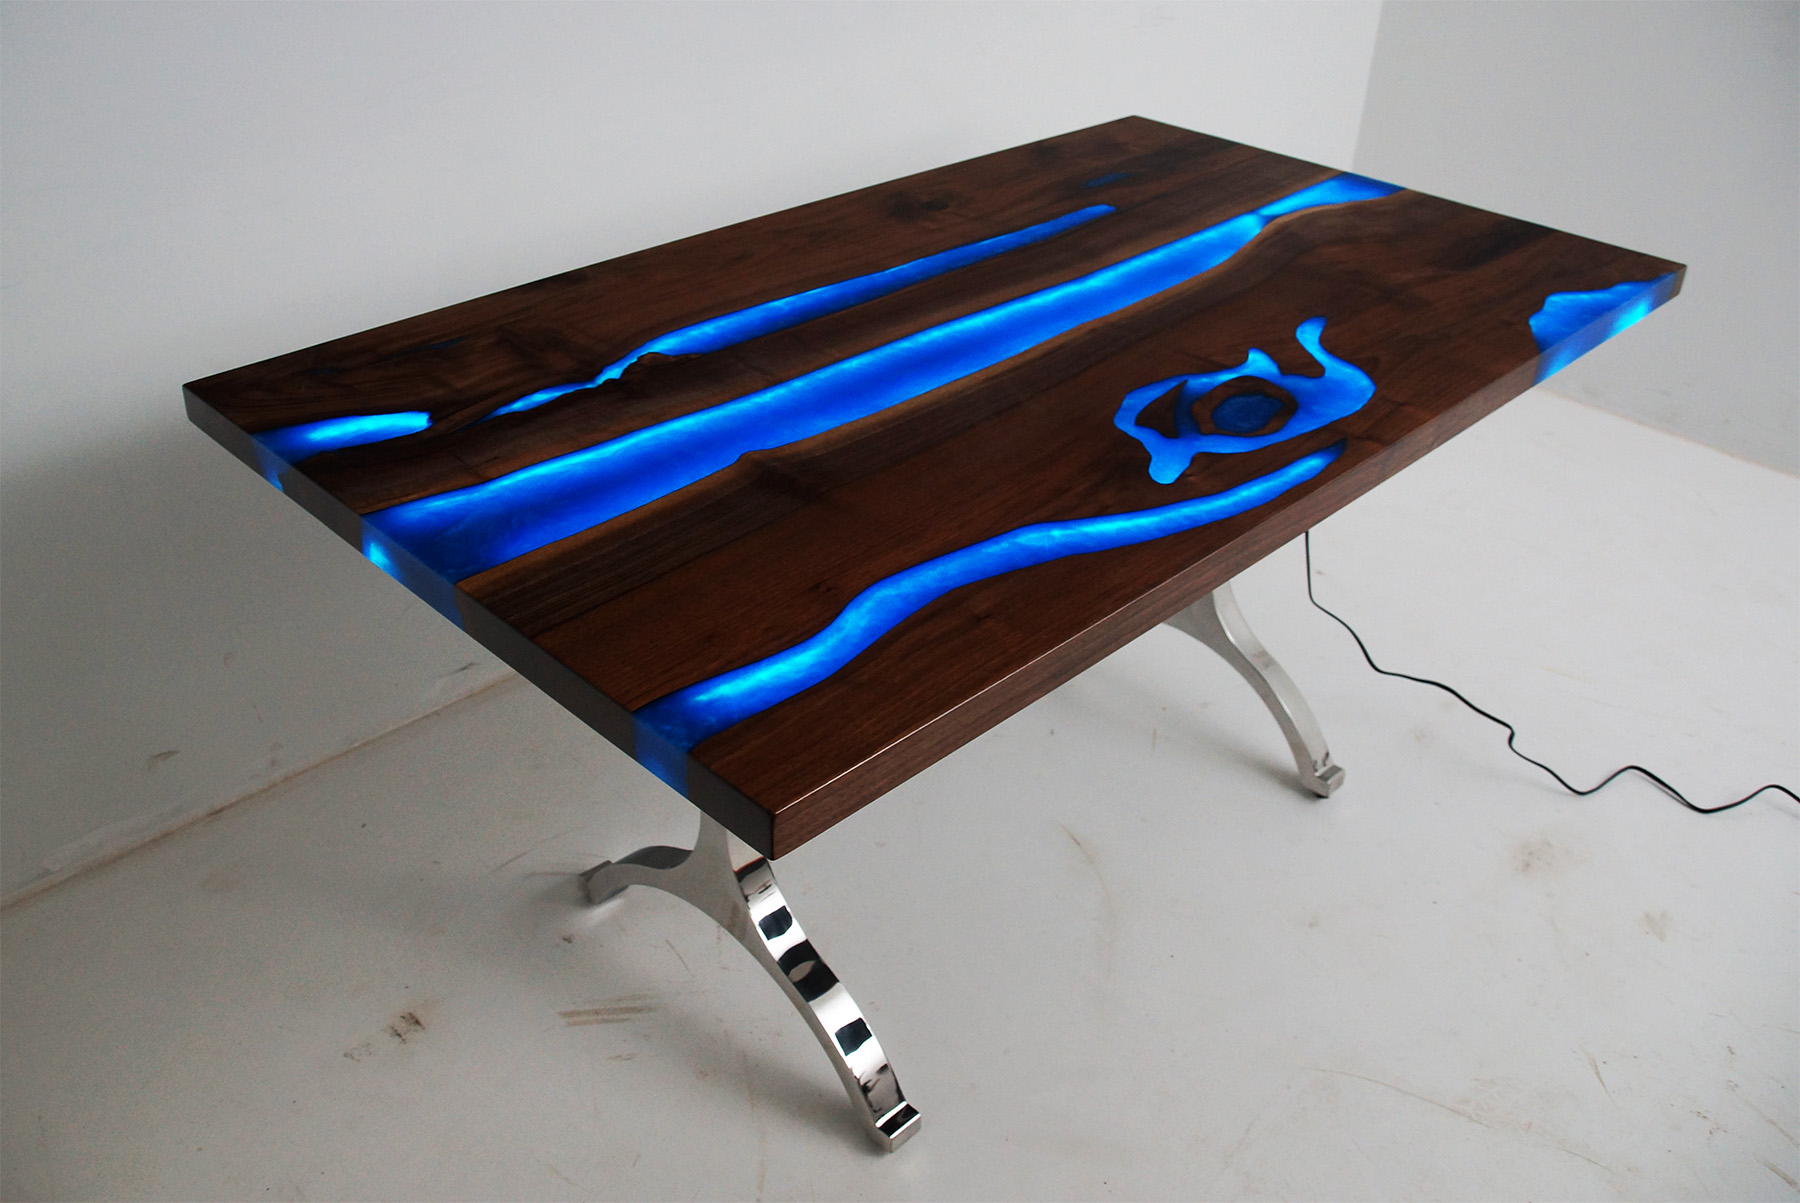 Blue River Walnut Dining Room Table With LED Lights